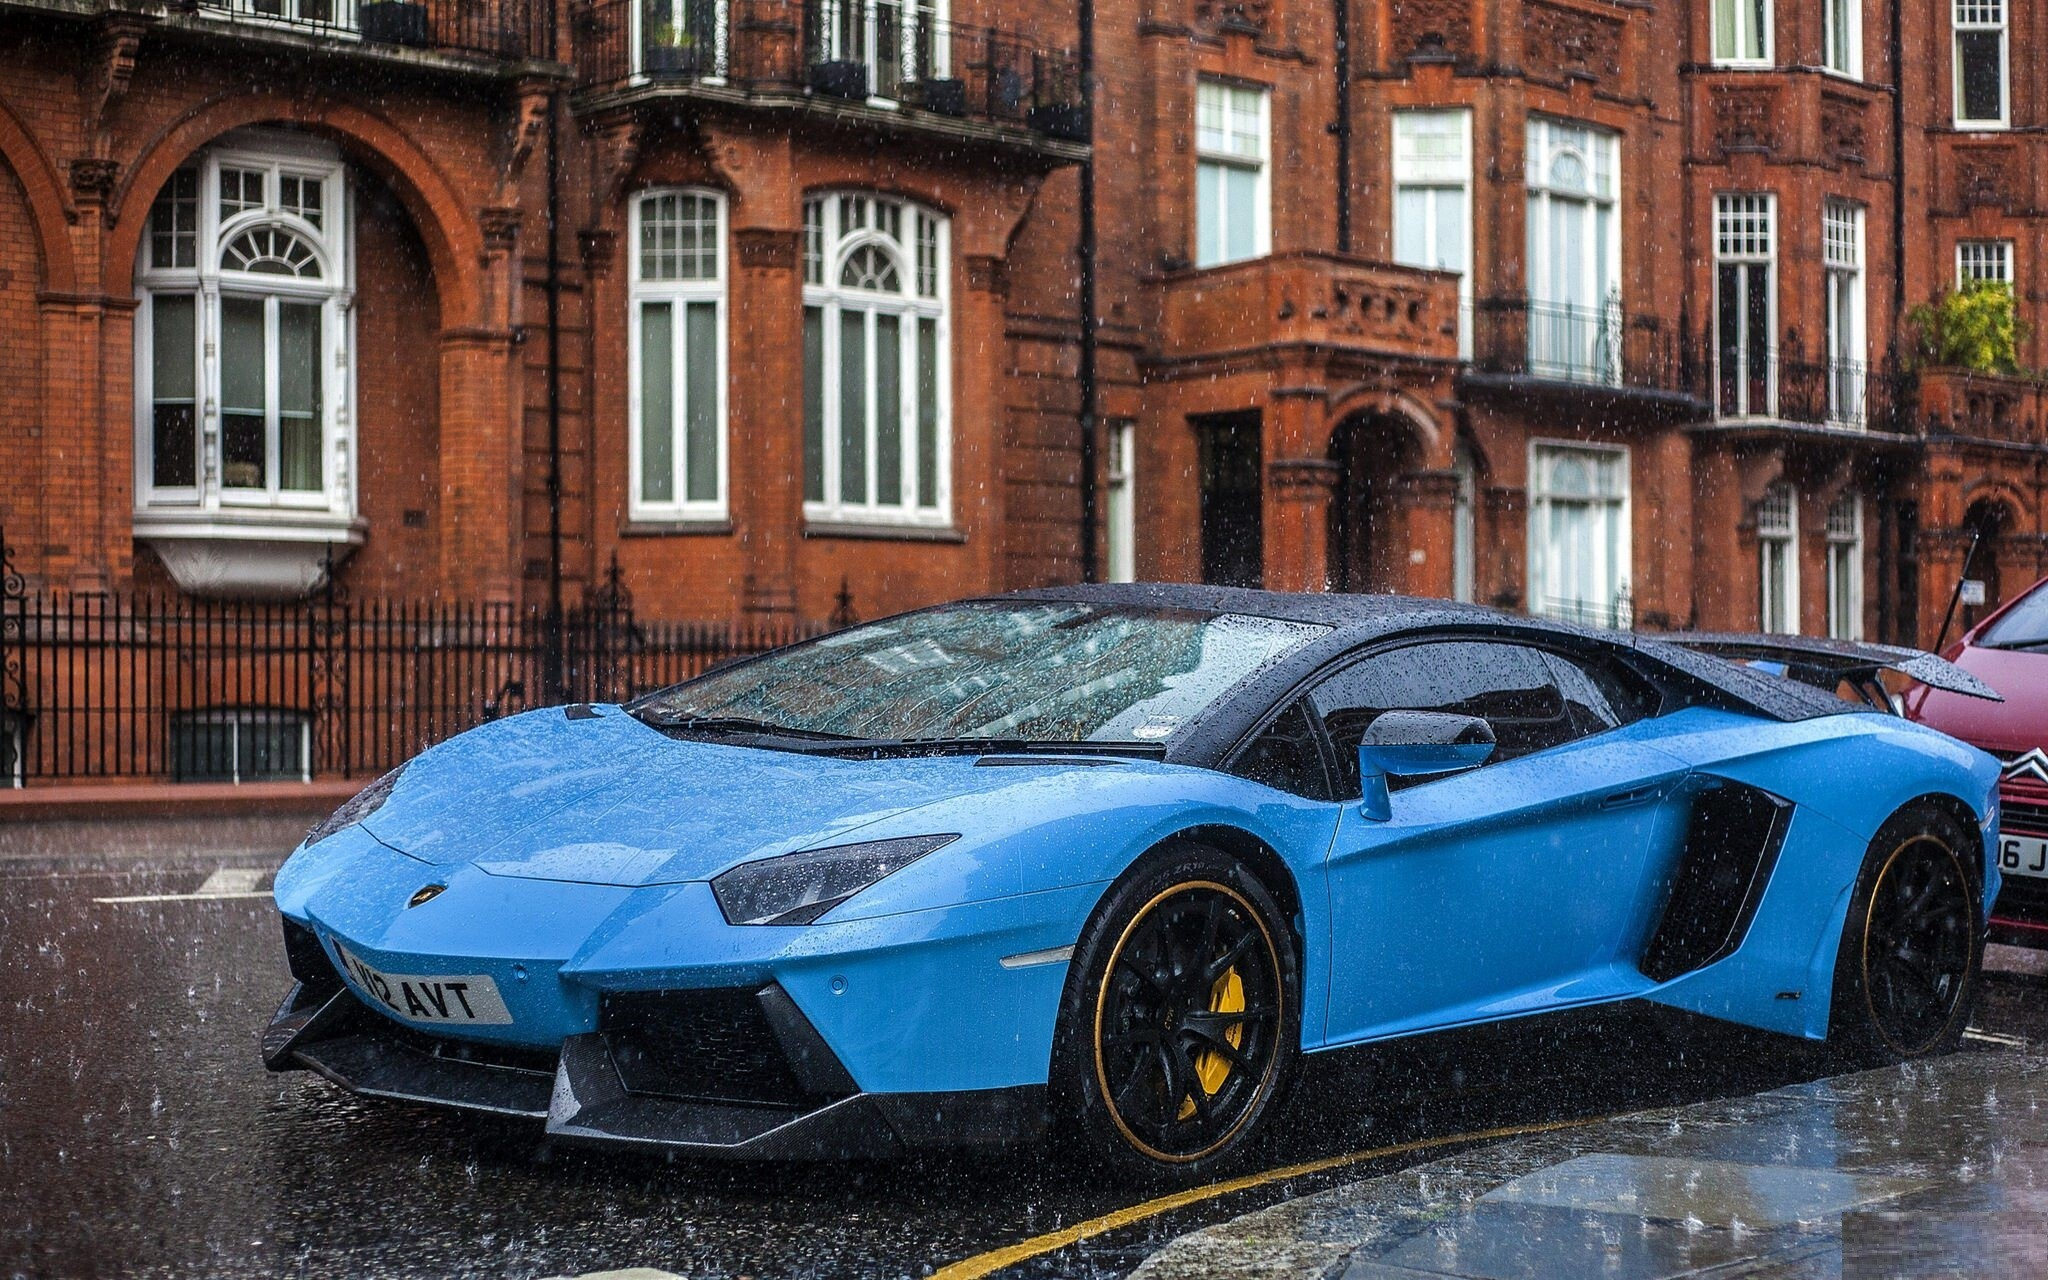 Aventador Lamborghini Blue Car In Rain Hd Luxury Wallpaper Hd Wallpapers